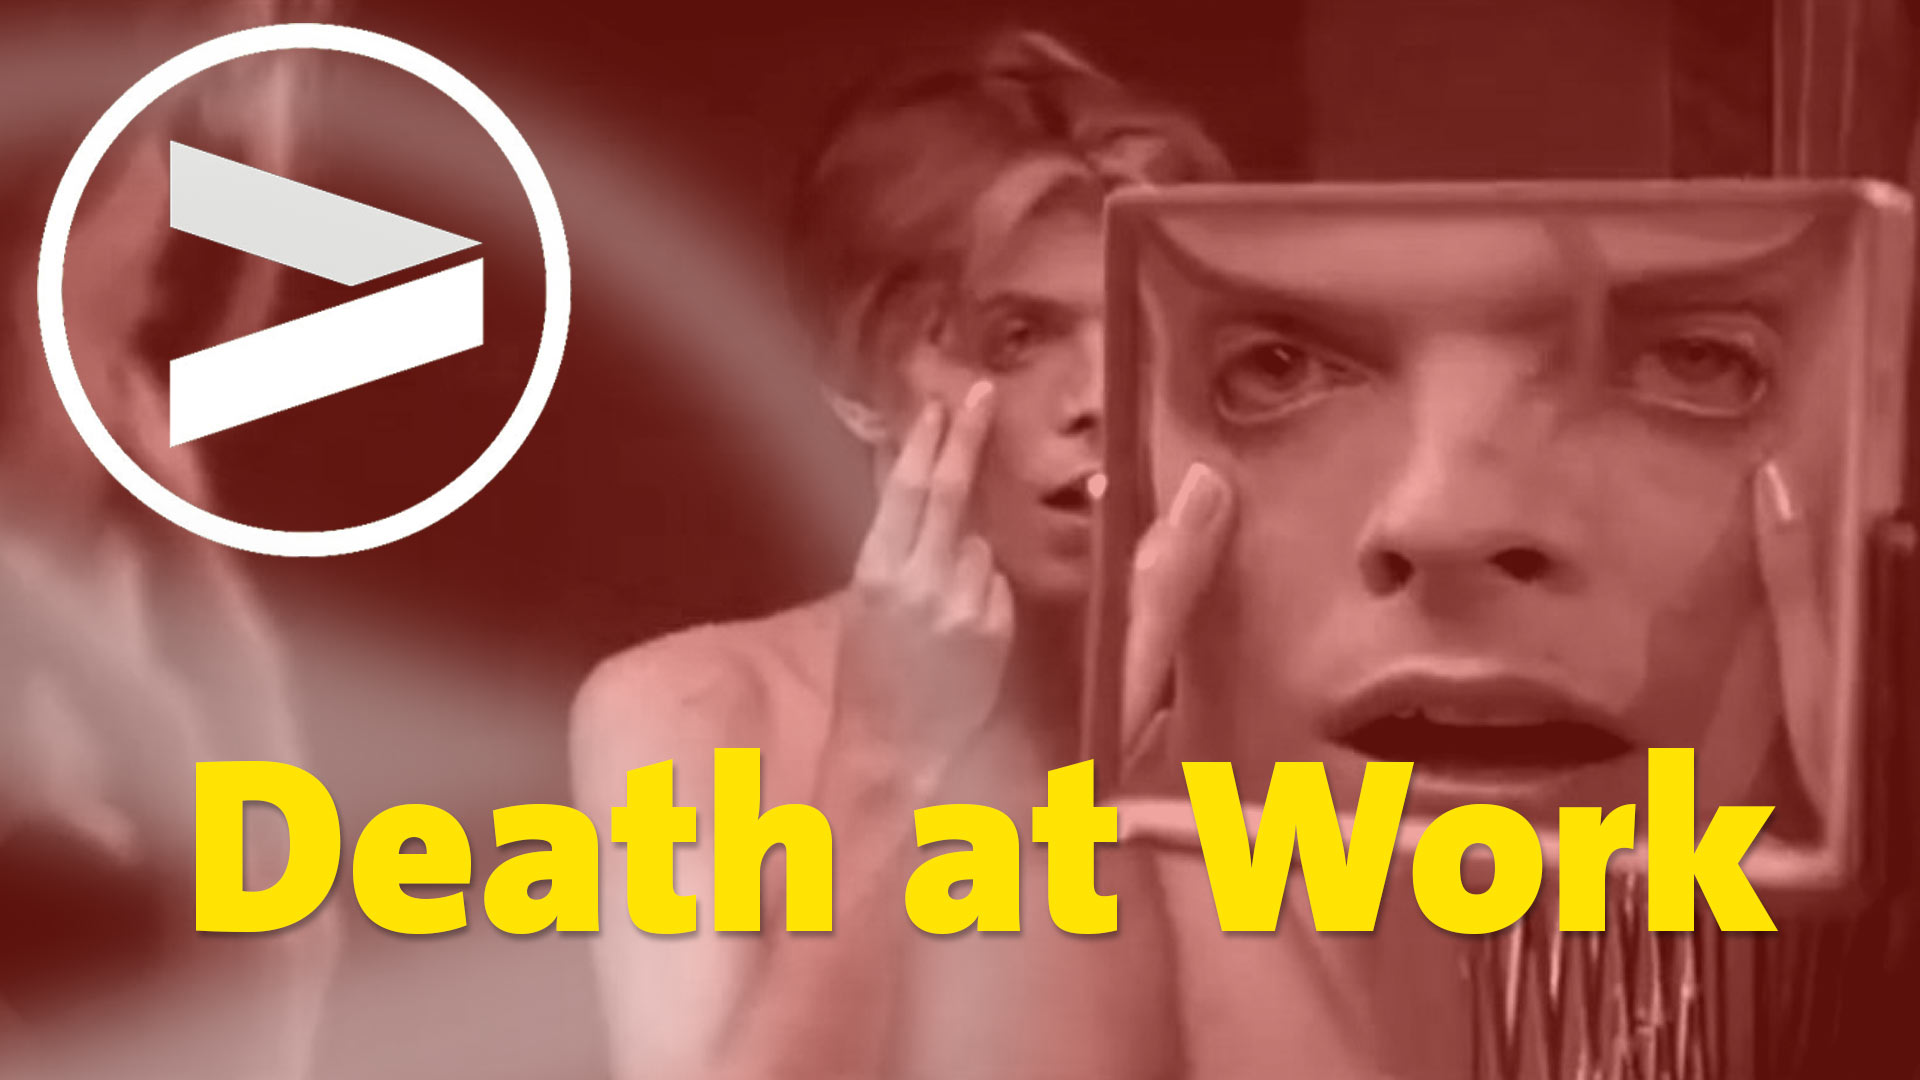 Death at Work: The Mirror sees it all